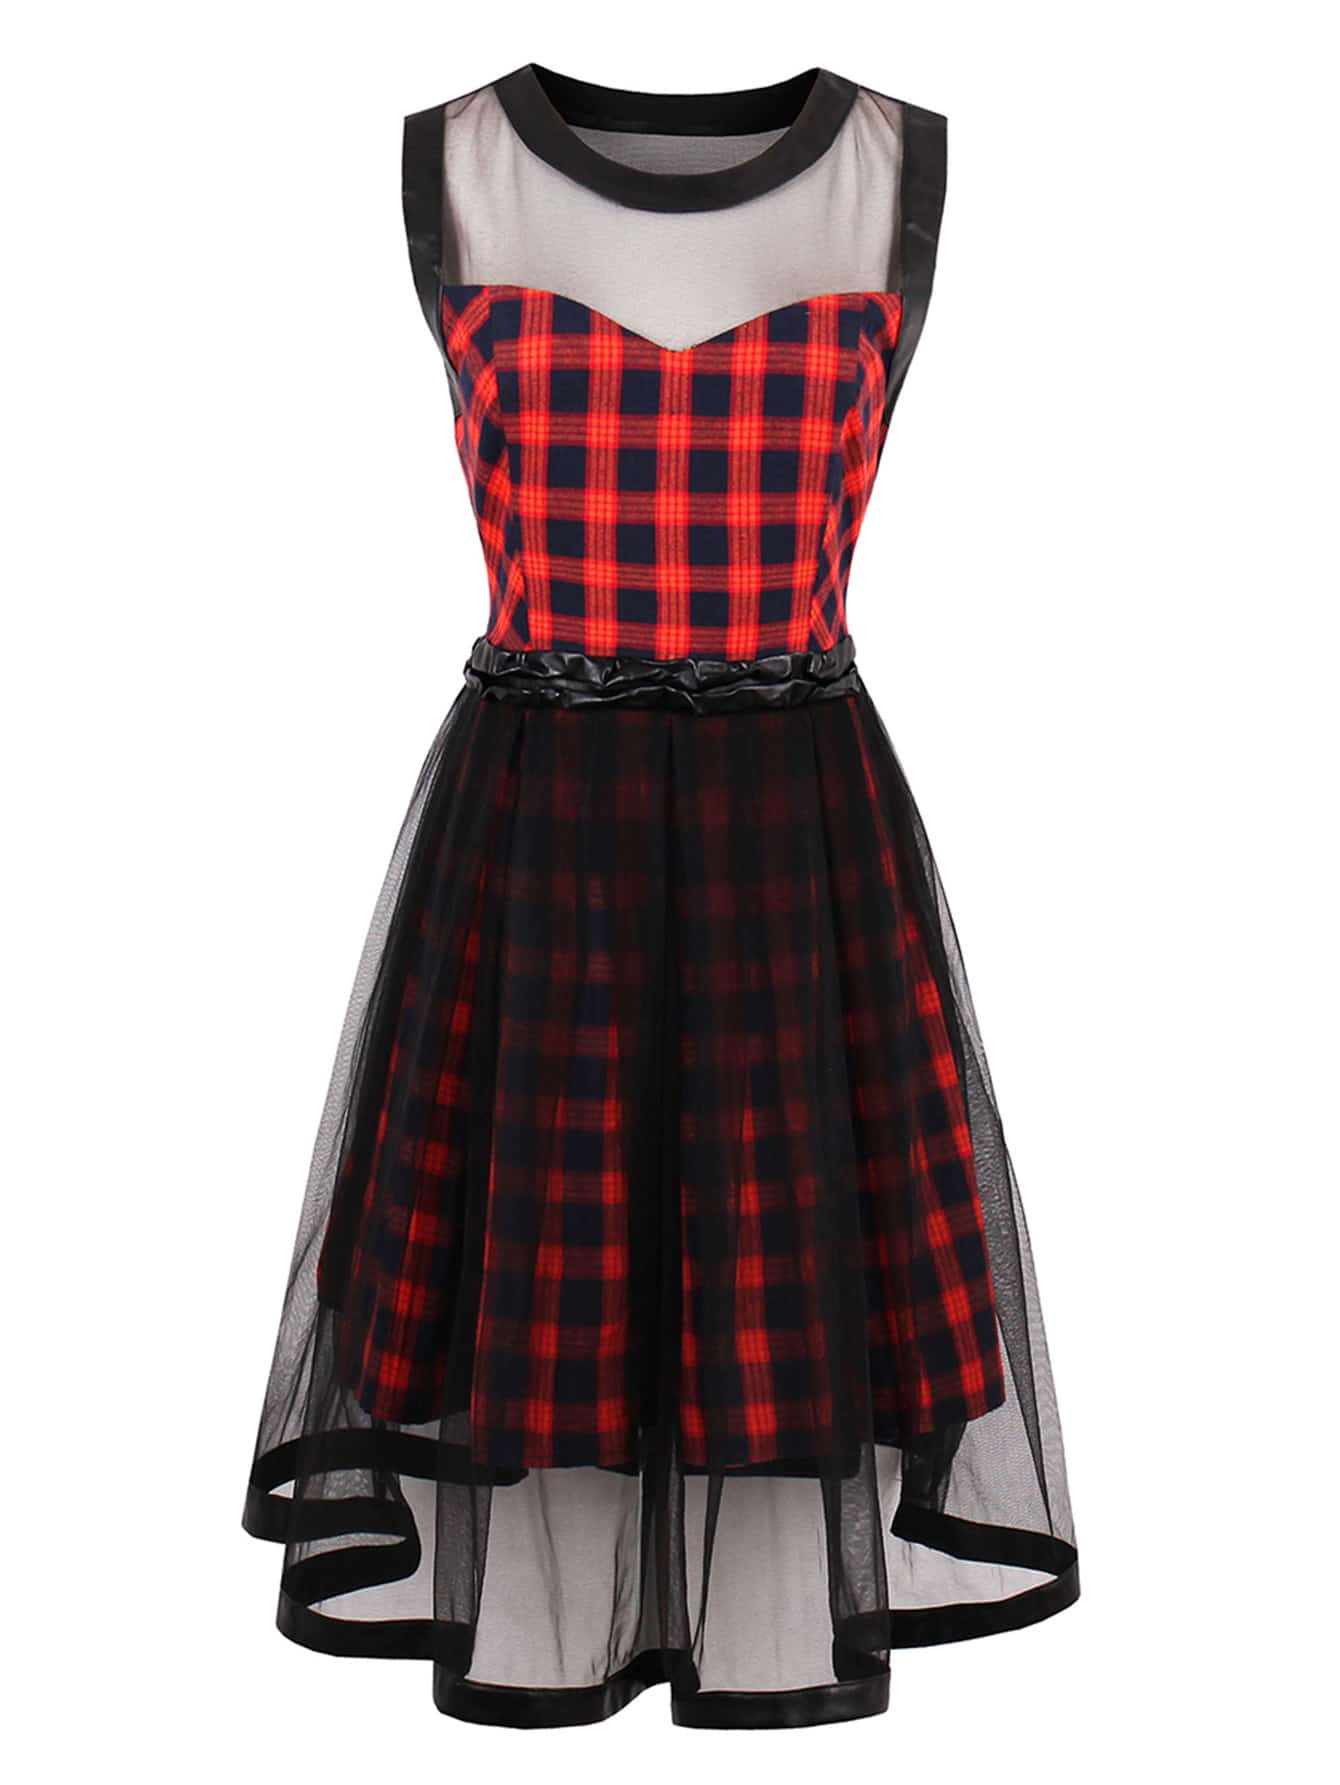 Contrast Mesh Tartan Plaid Dress цена и фото